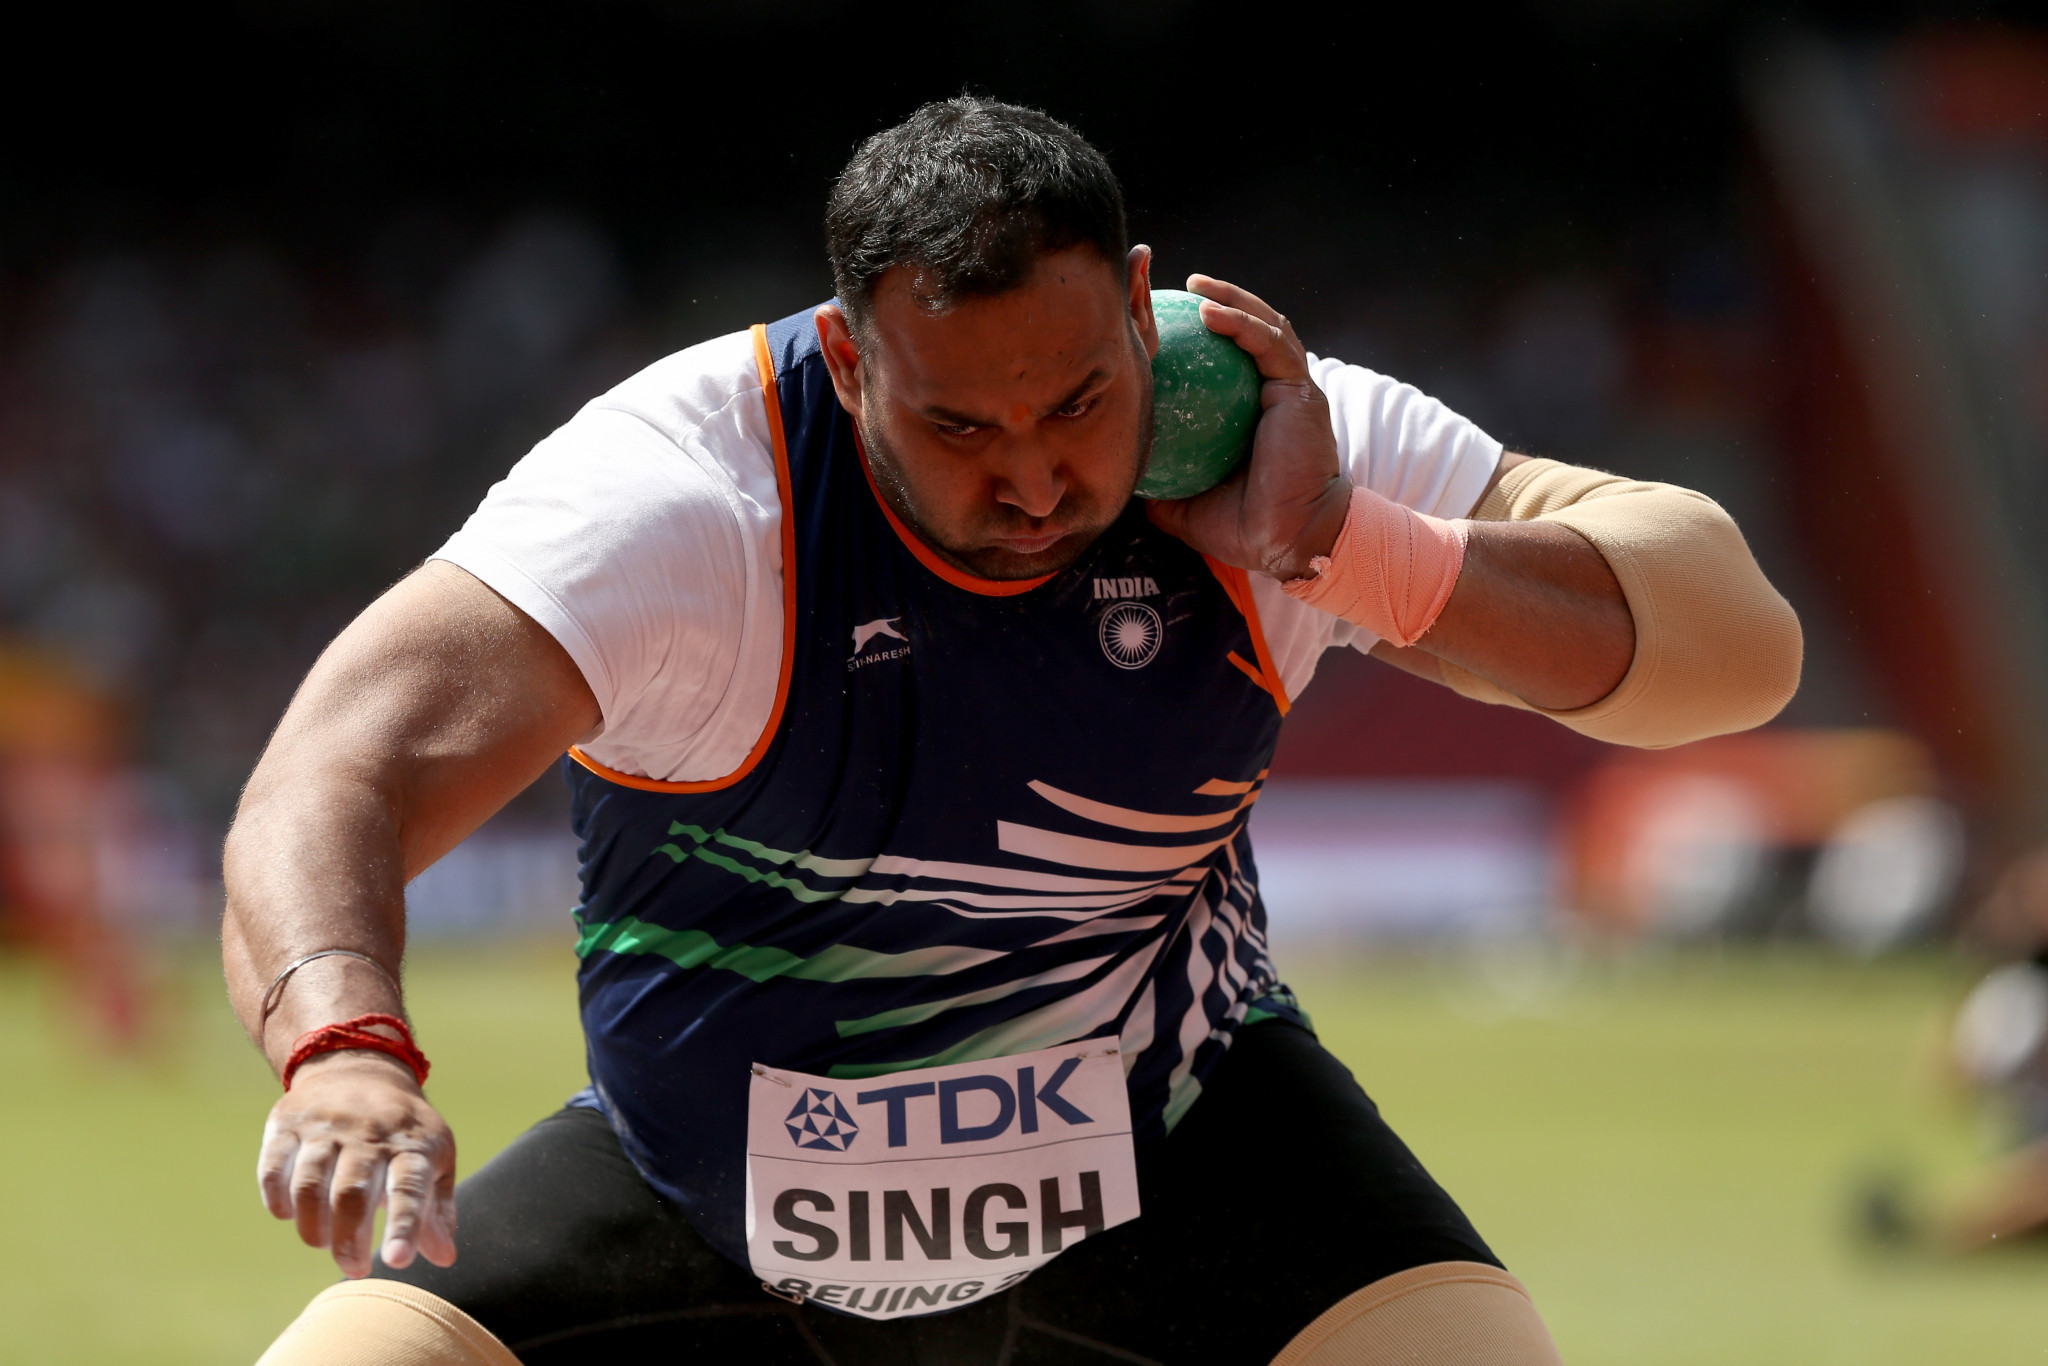 WADA appeals decision to shorten Indian shot putter's doping ban to CAS